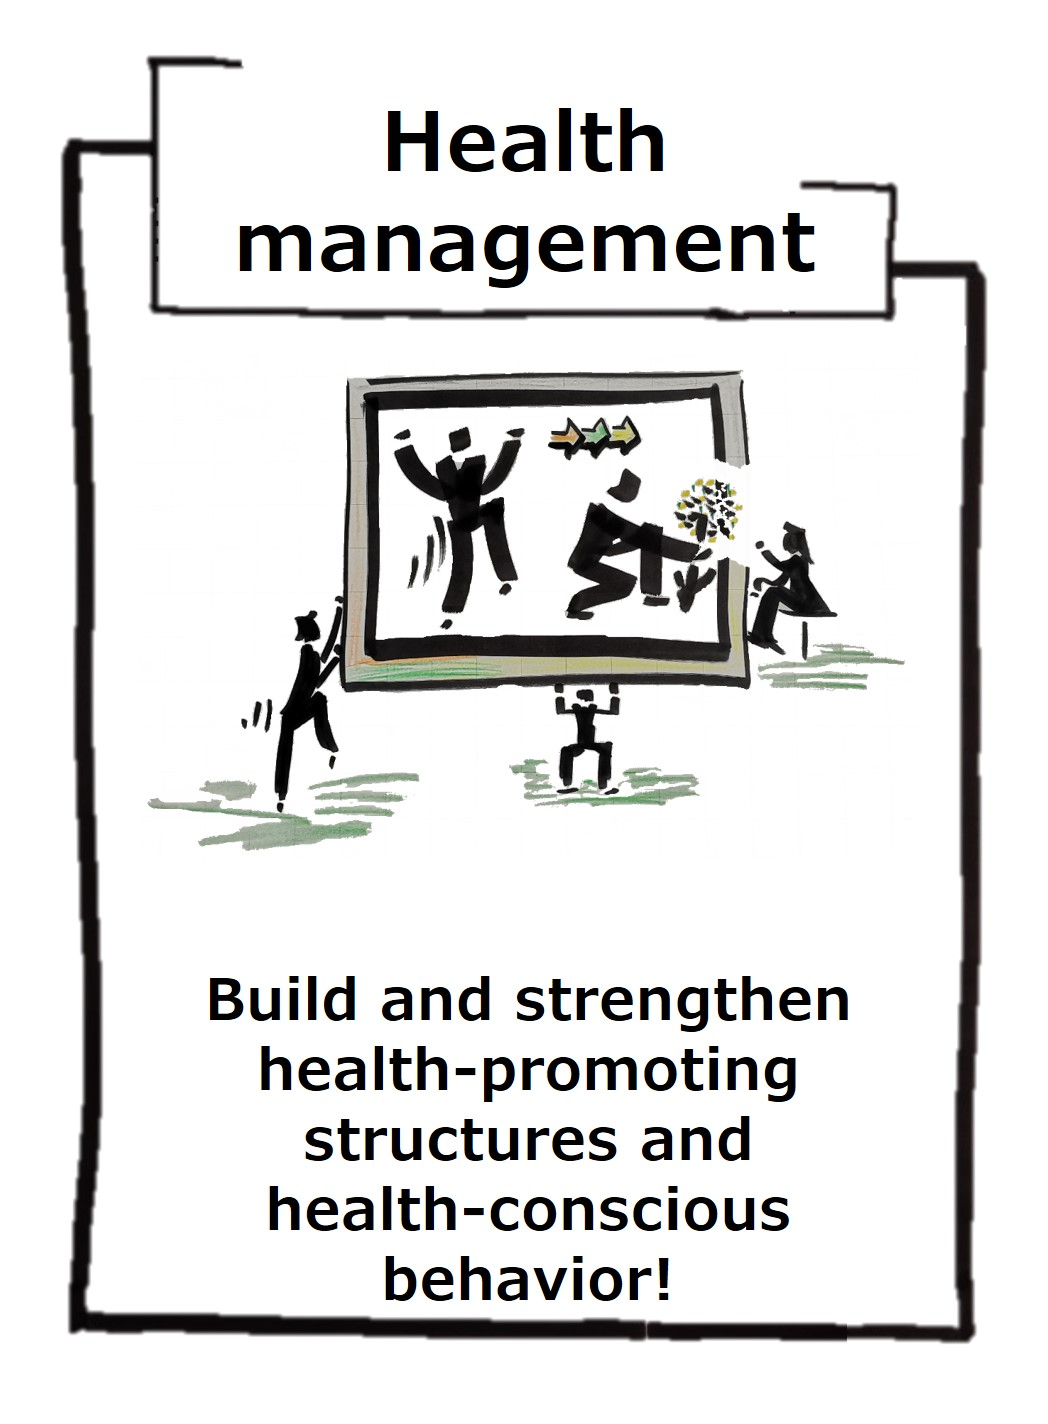 Health management for the physical and mental health of all employees in the company